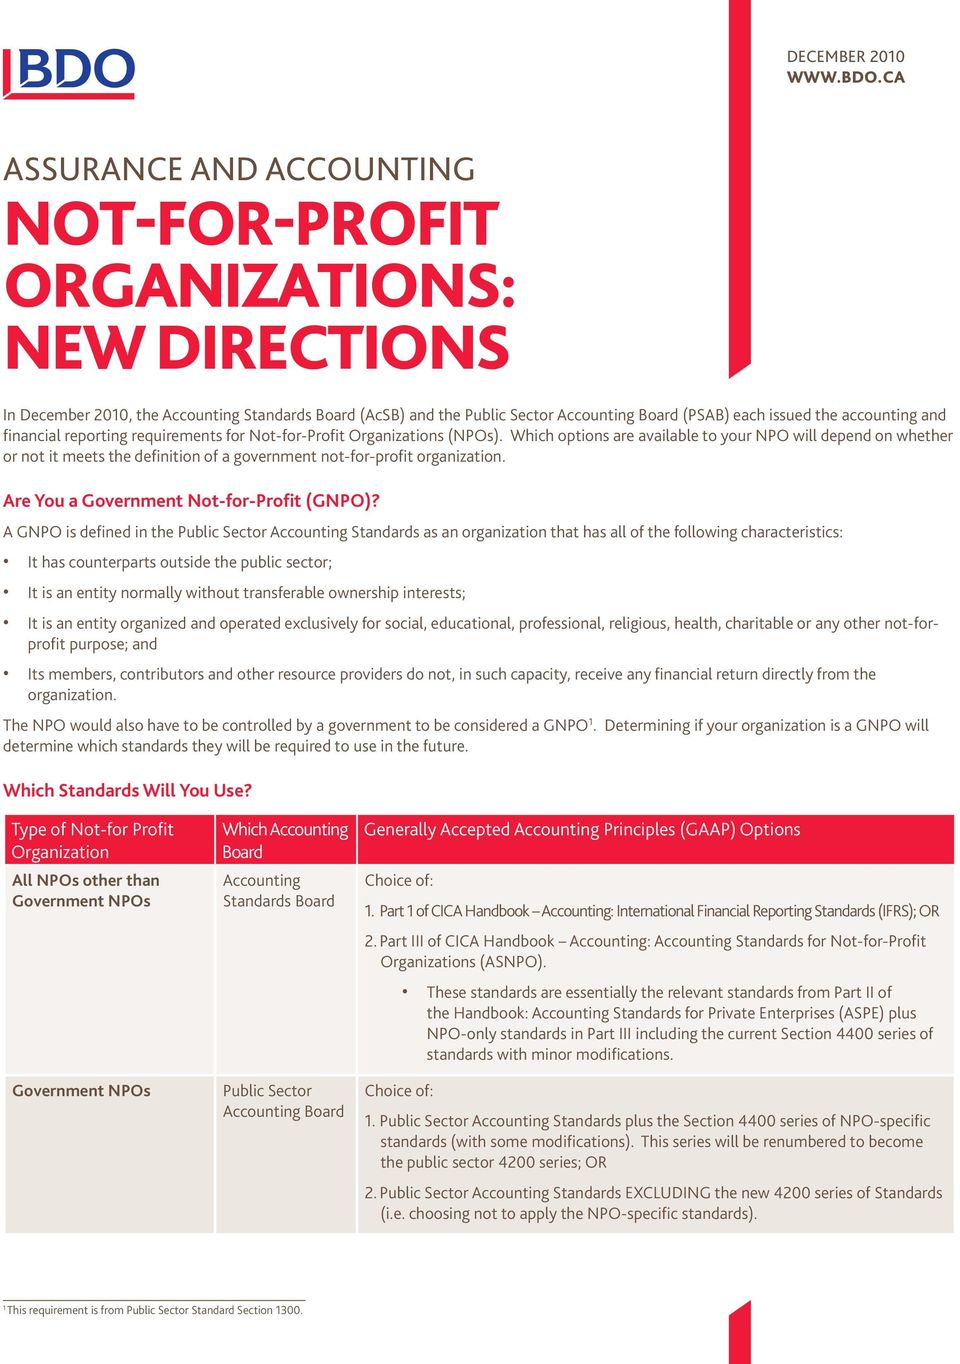 accounting and financial reporting requirements for Not-for-Profit Organizations (NPOs).